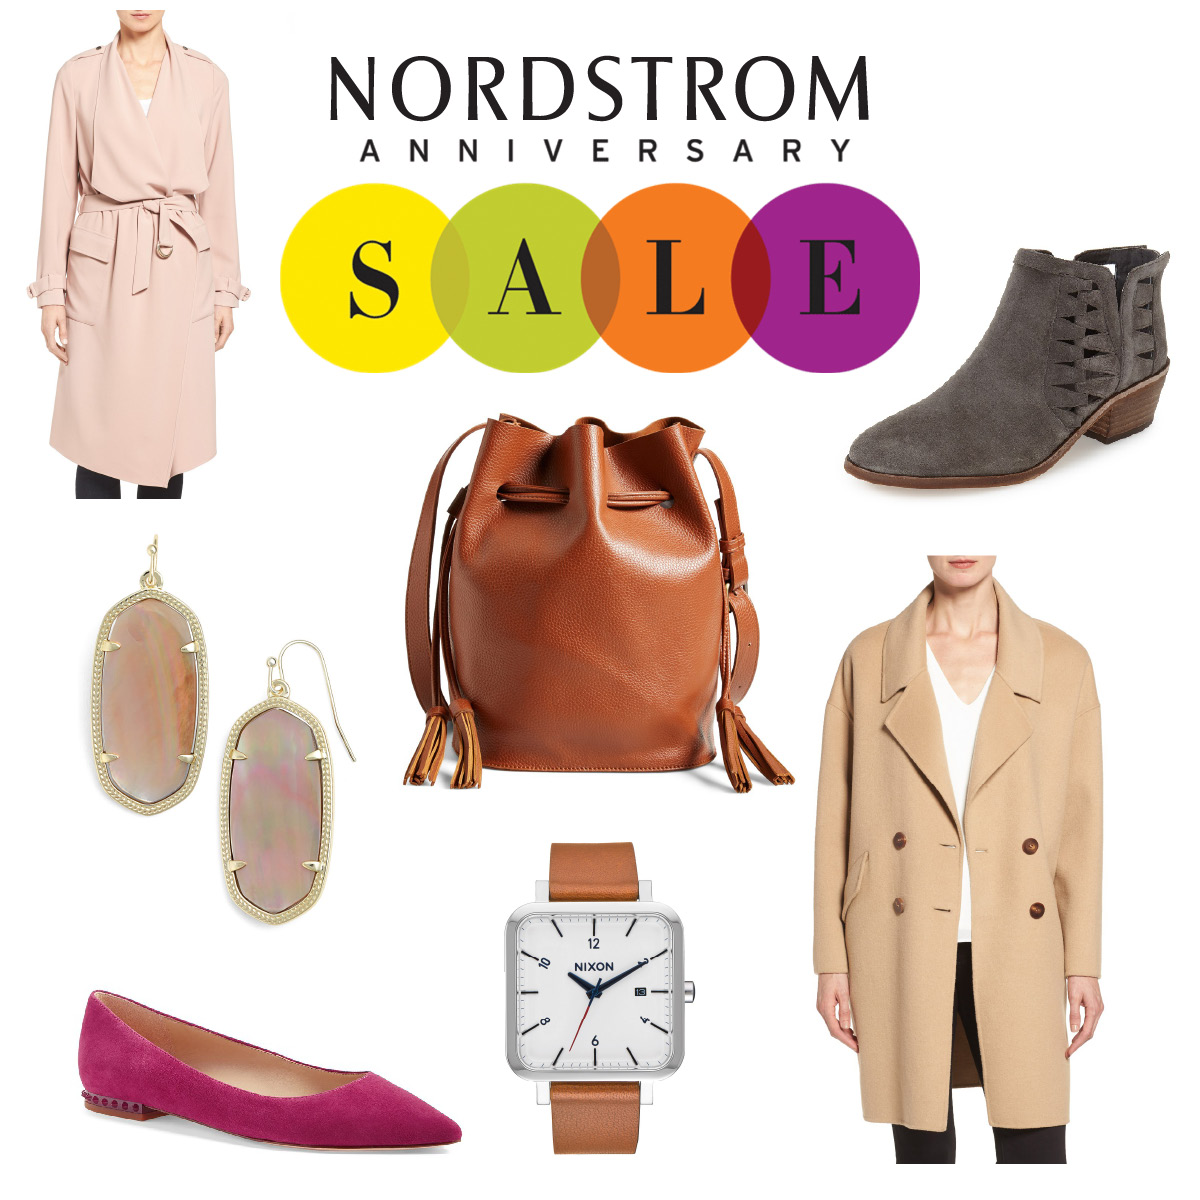 Nordstrom Anniversary Sale 2016 - see my picks